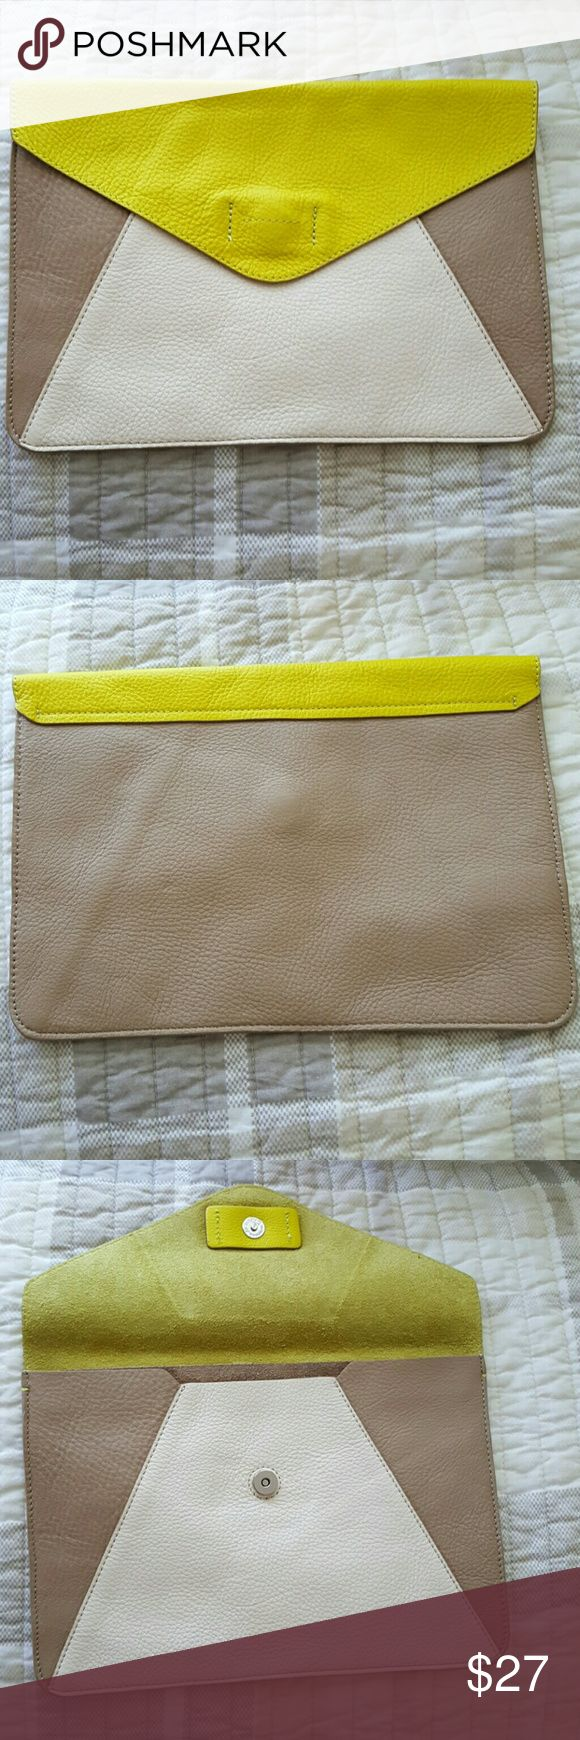 Clutch bag LEATHER clutch bag, perfect for dates. Very good condition, got it as a gift. With every purchase you will get a little cute GIFT for Free. ? Trade - yes GAP Bags Clutches & Wristlets